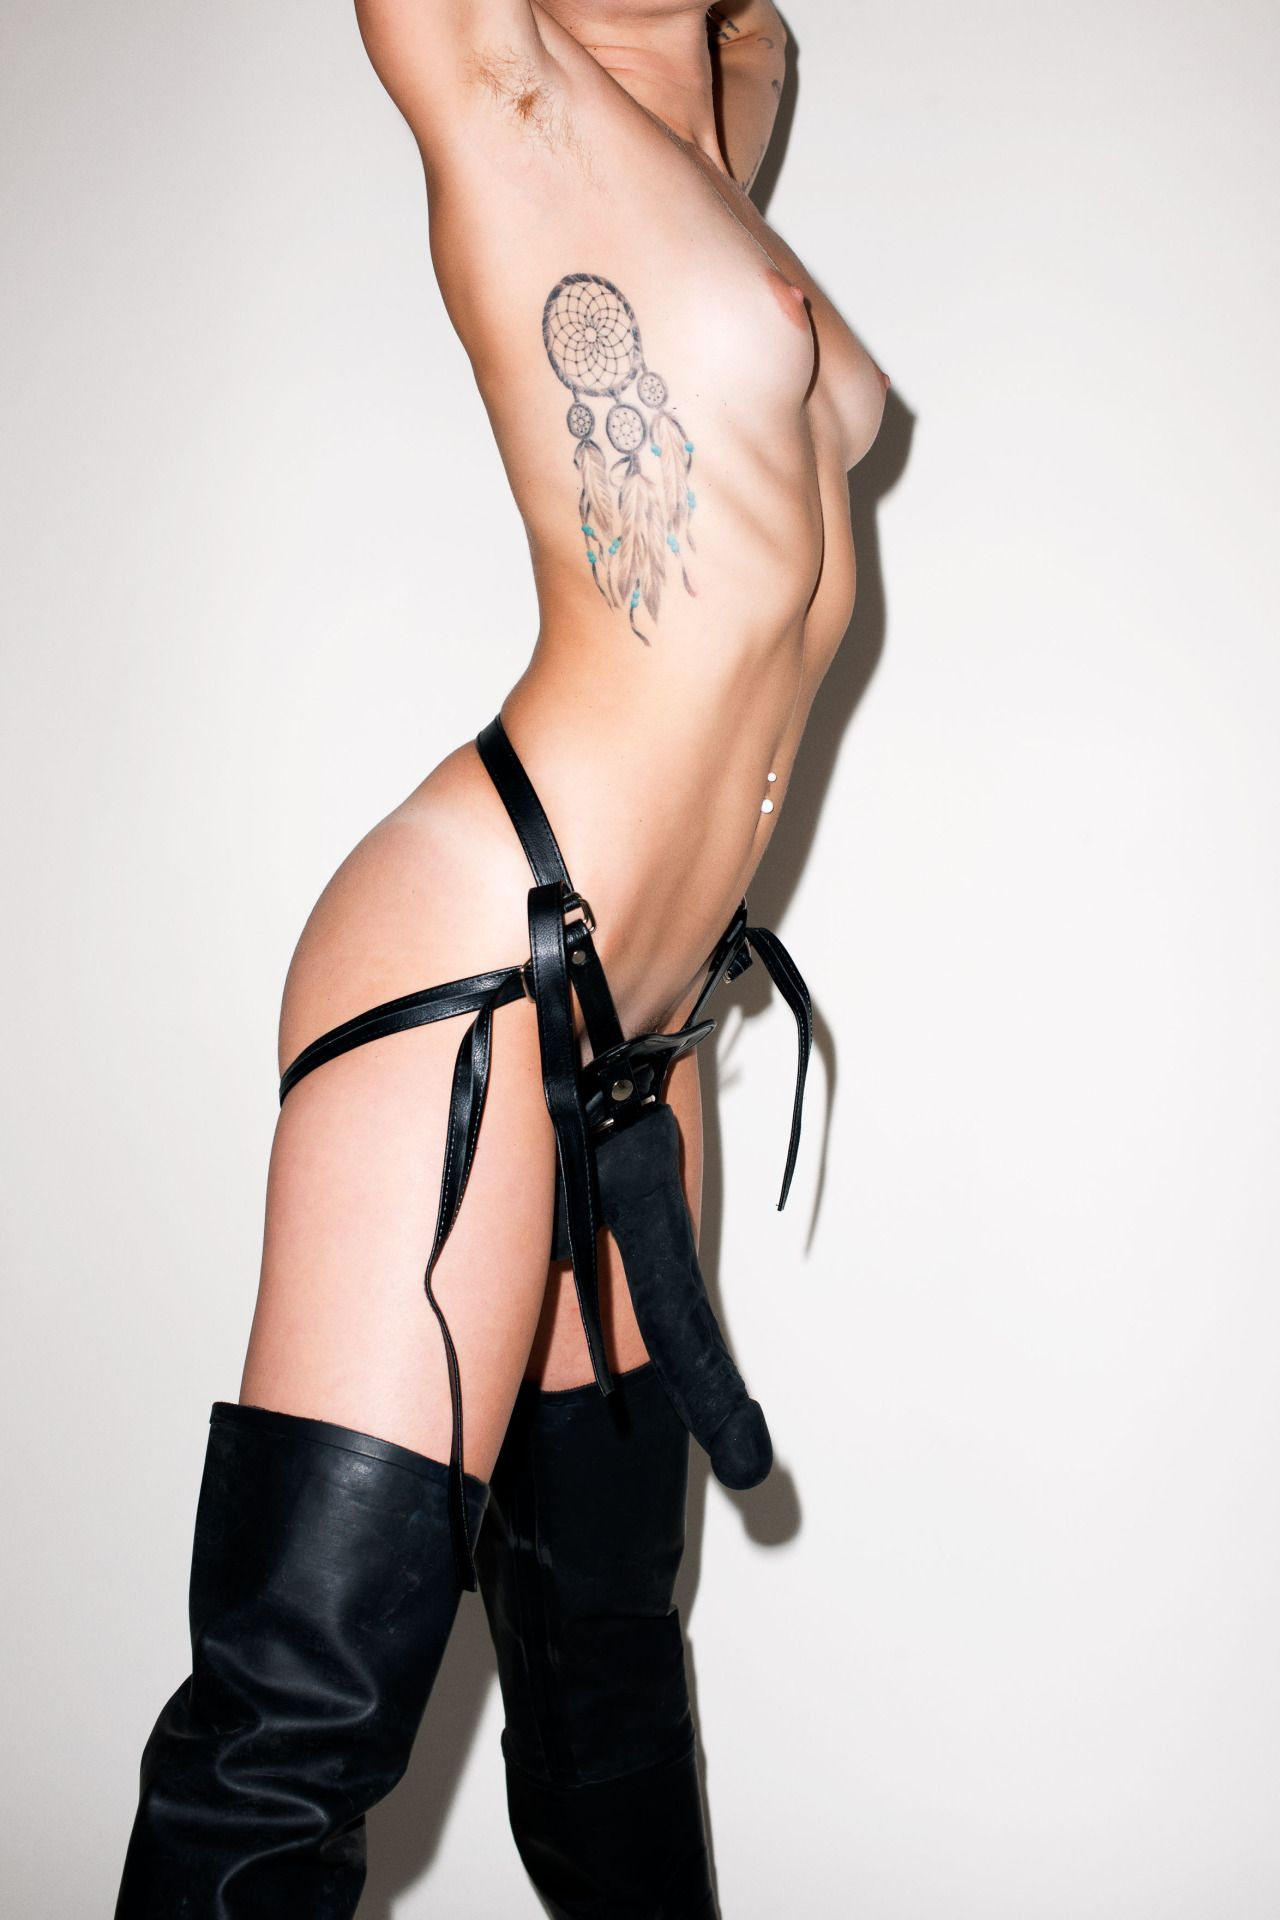 Apologise, miley cyrus goth naked